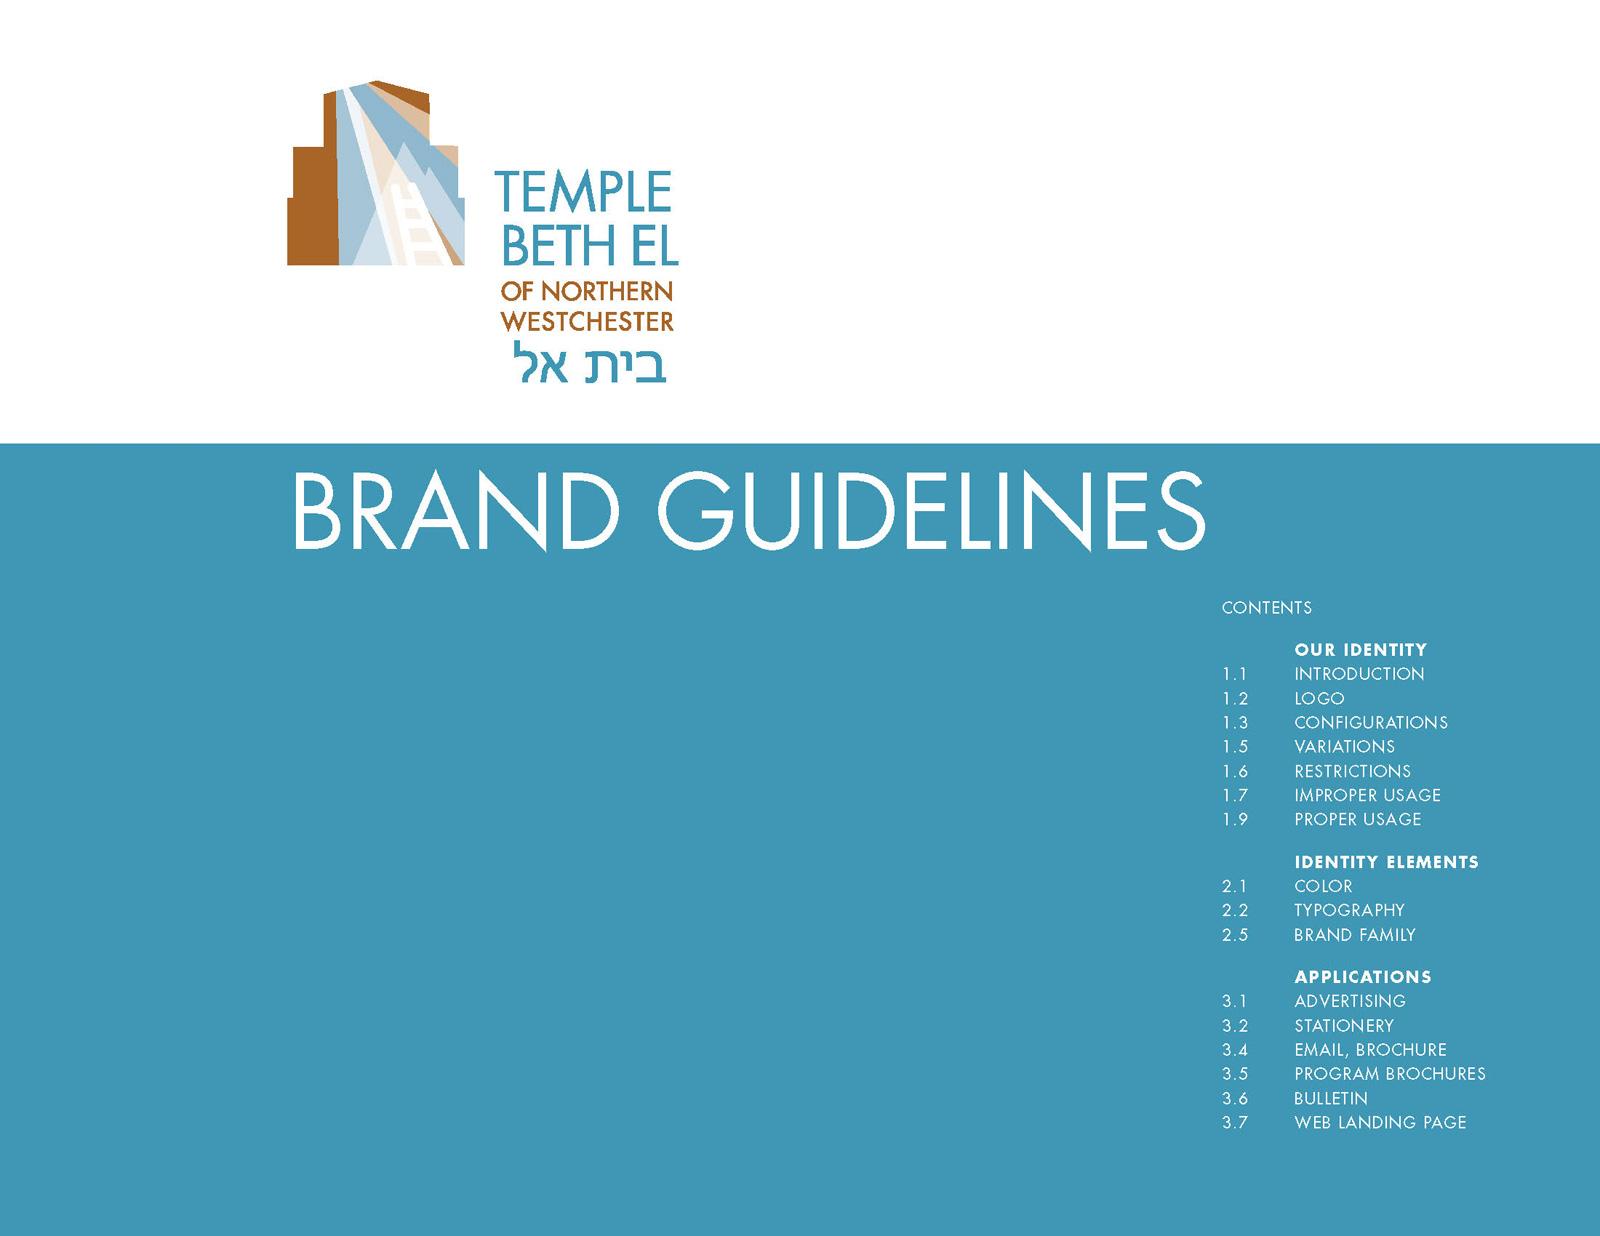 Roher/Sprague Partners - Temple BethEl Brand Guidelines